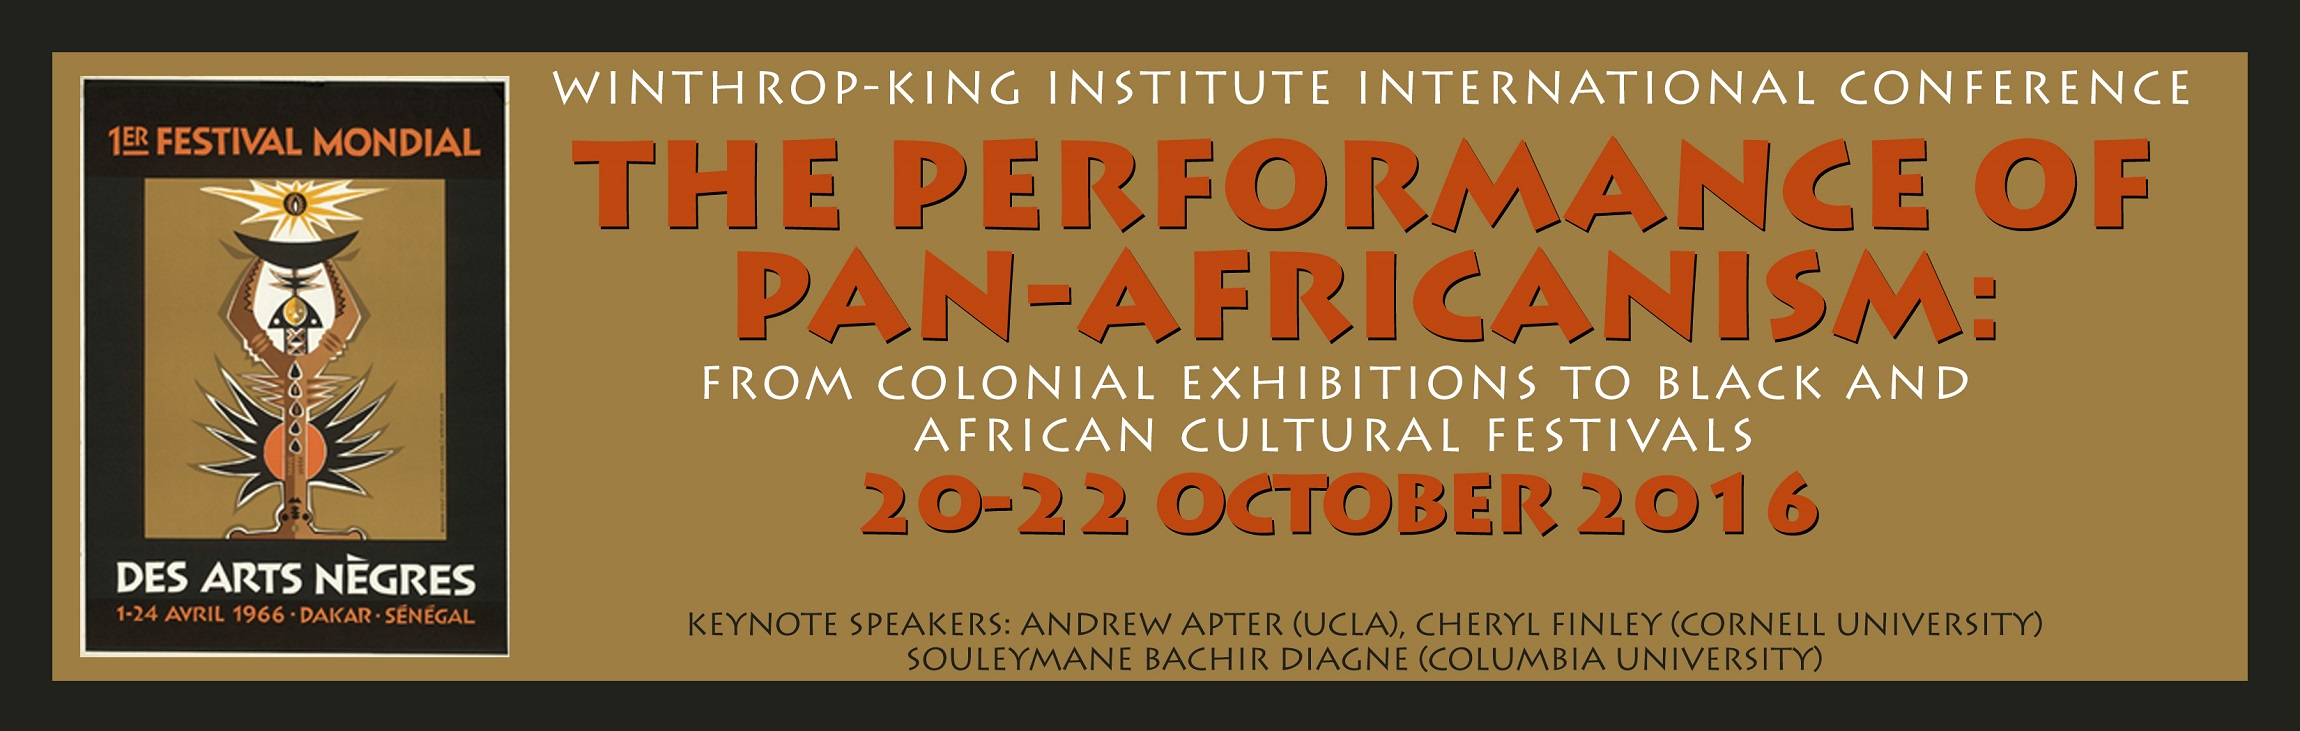 The Performance of Pan-Africanism - Conference Banner